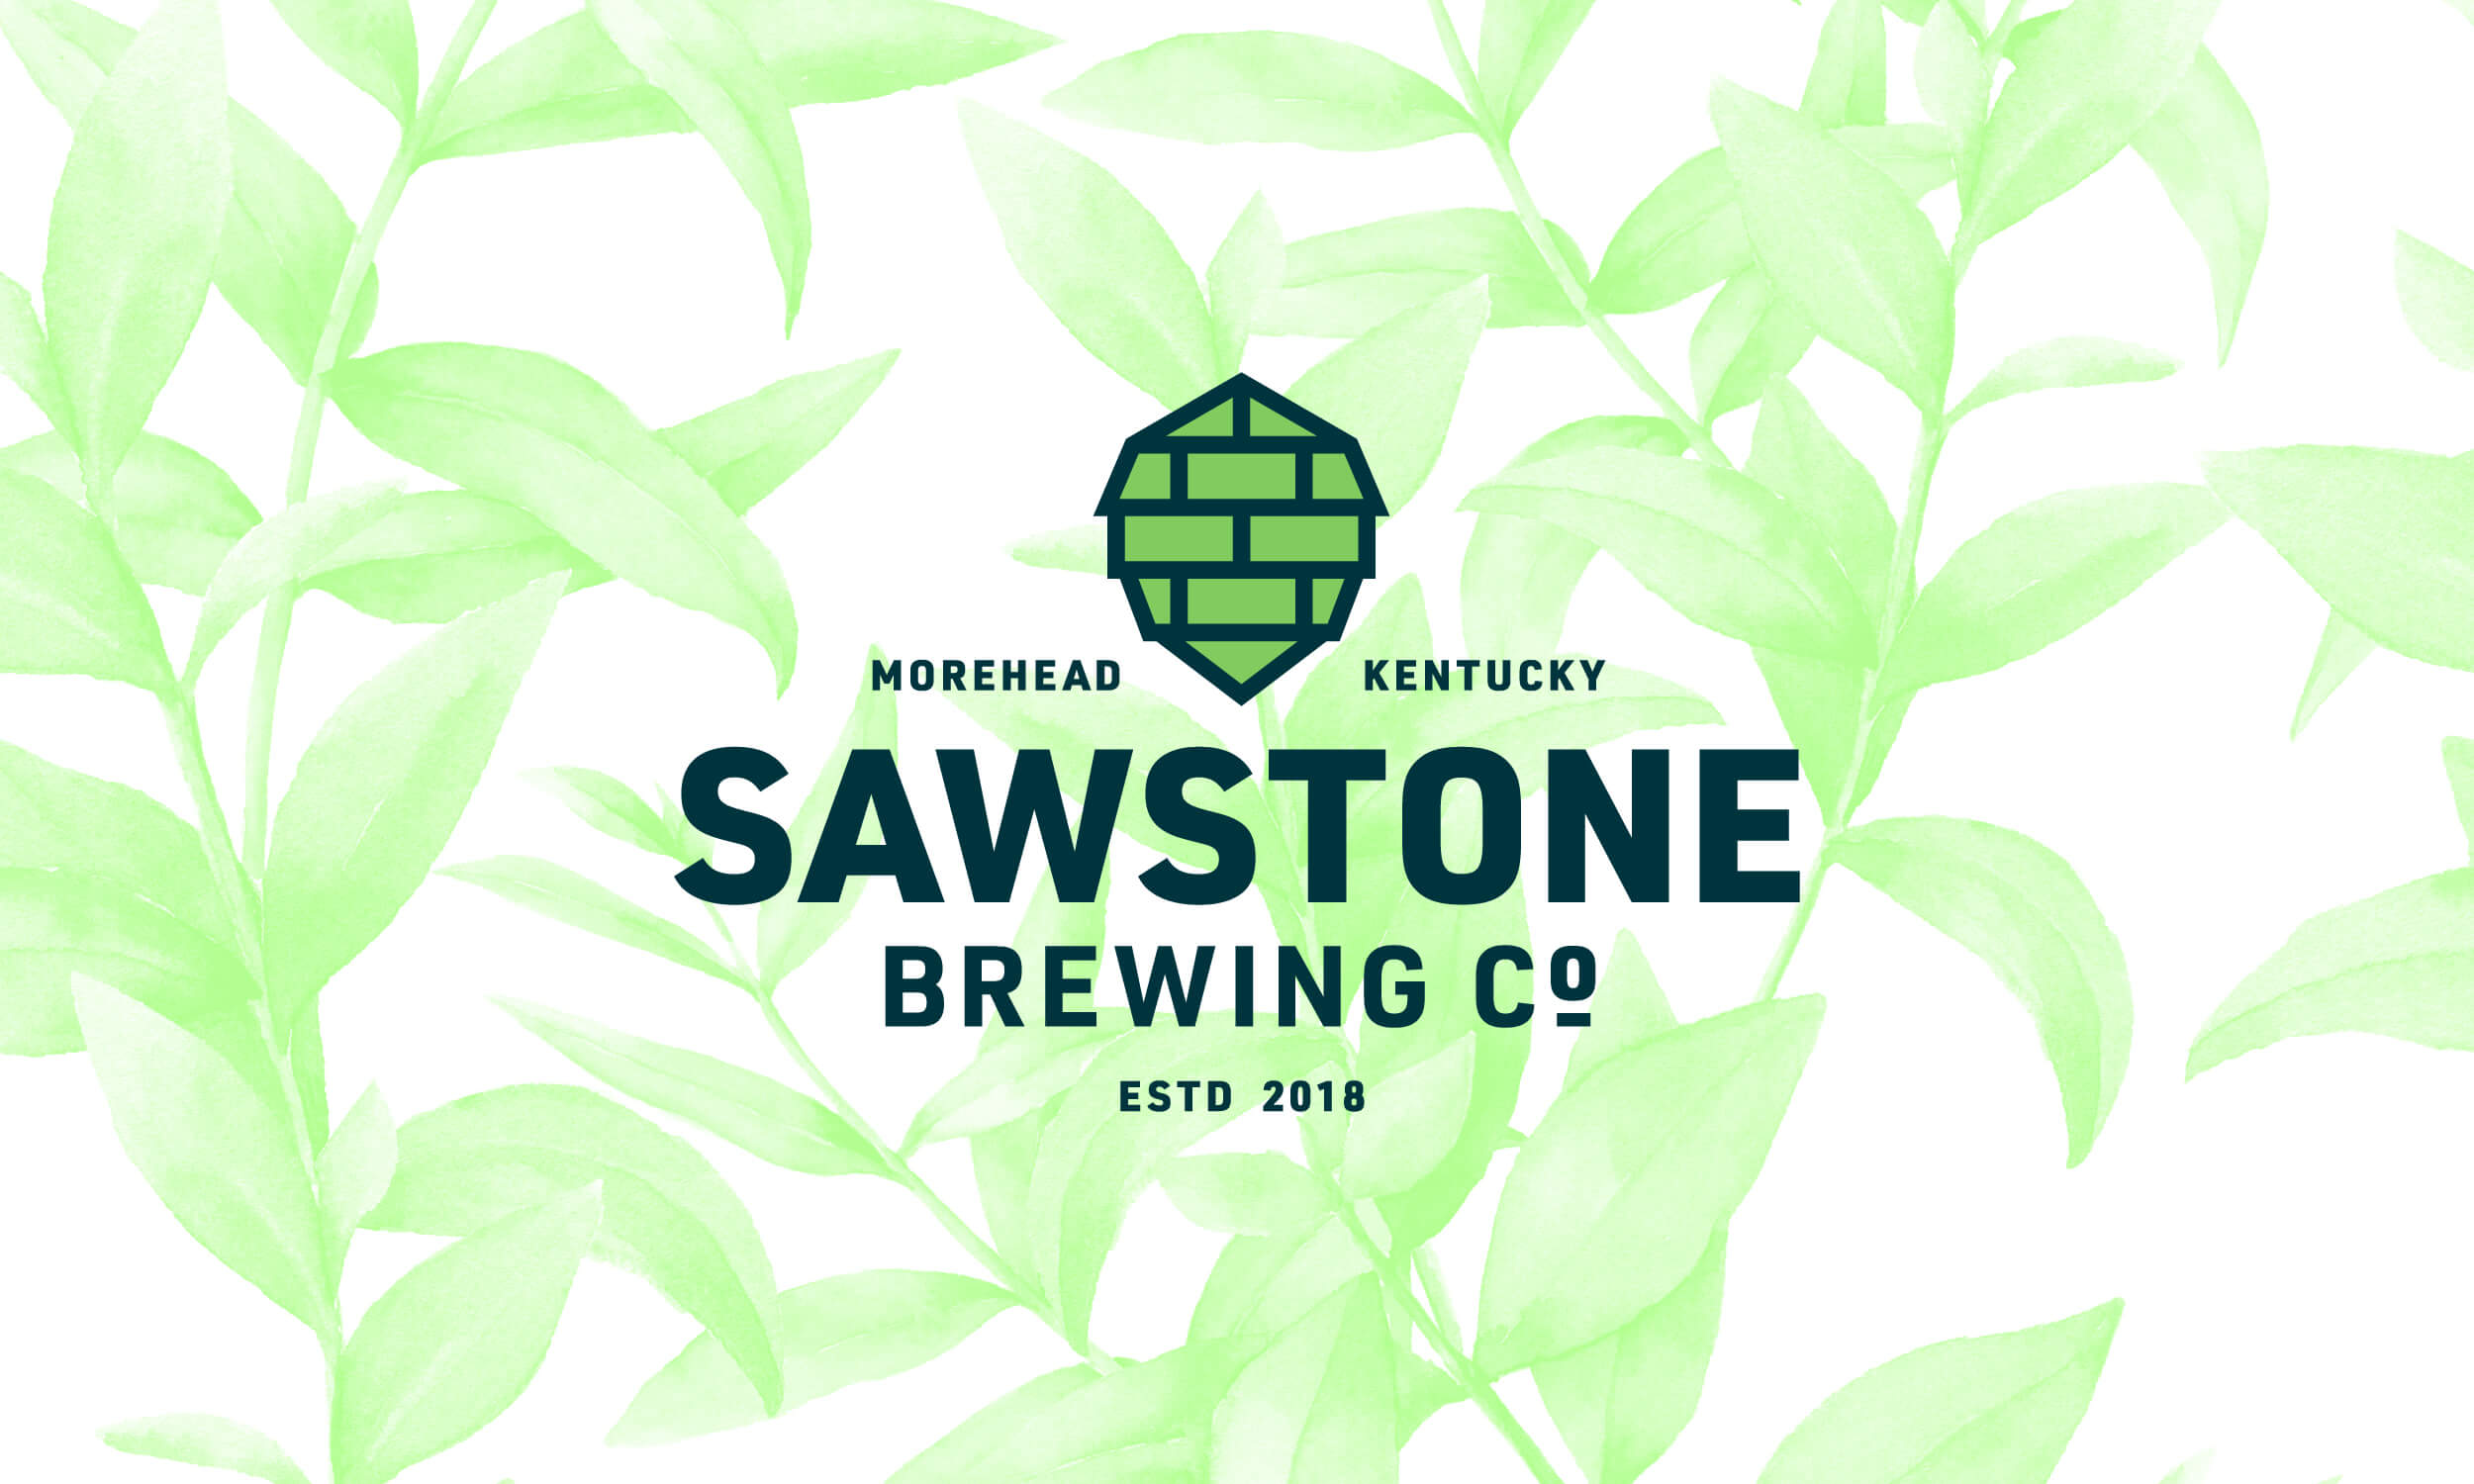 Sawstone Brewing Co.